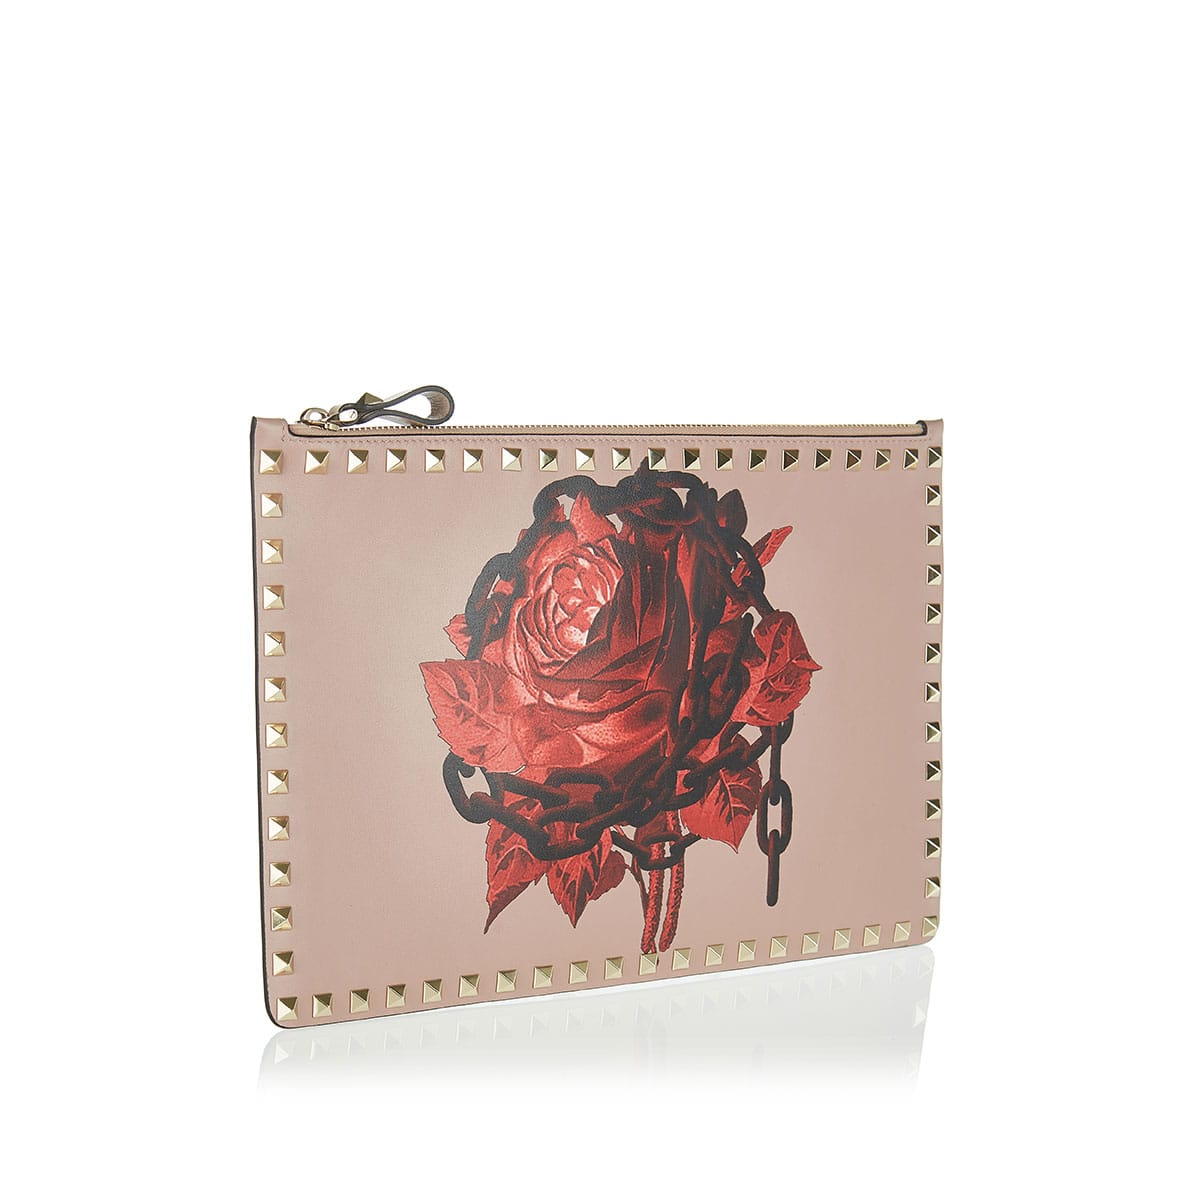 Rockstud rose-printed pouch